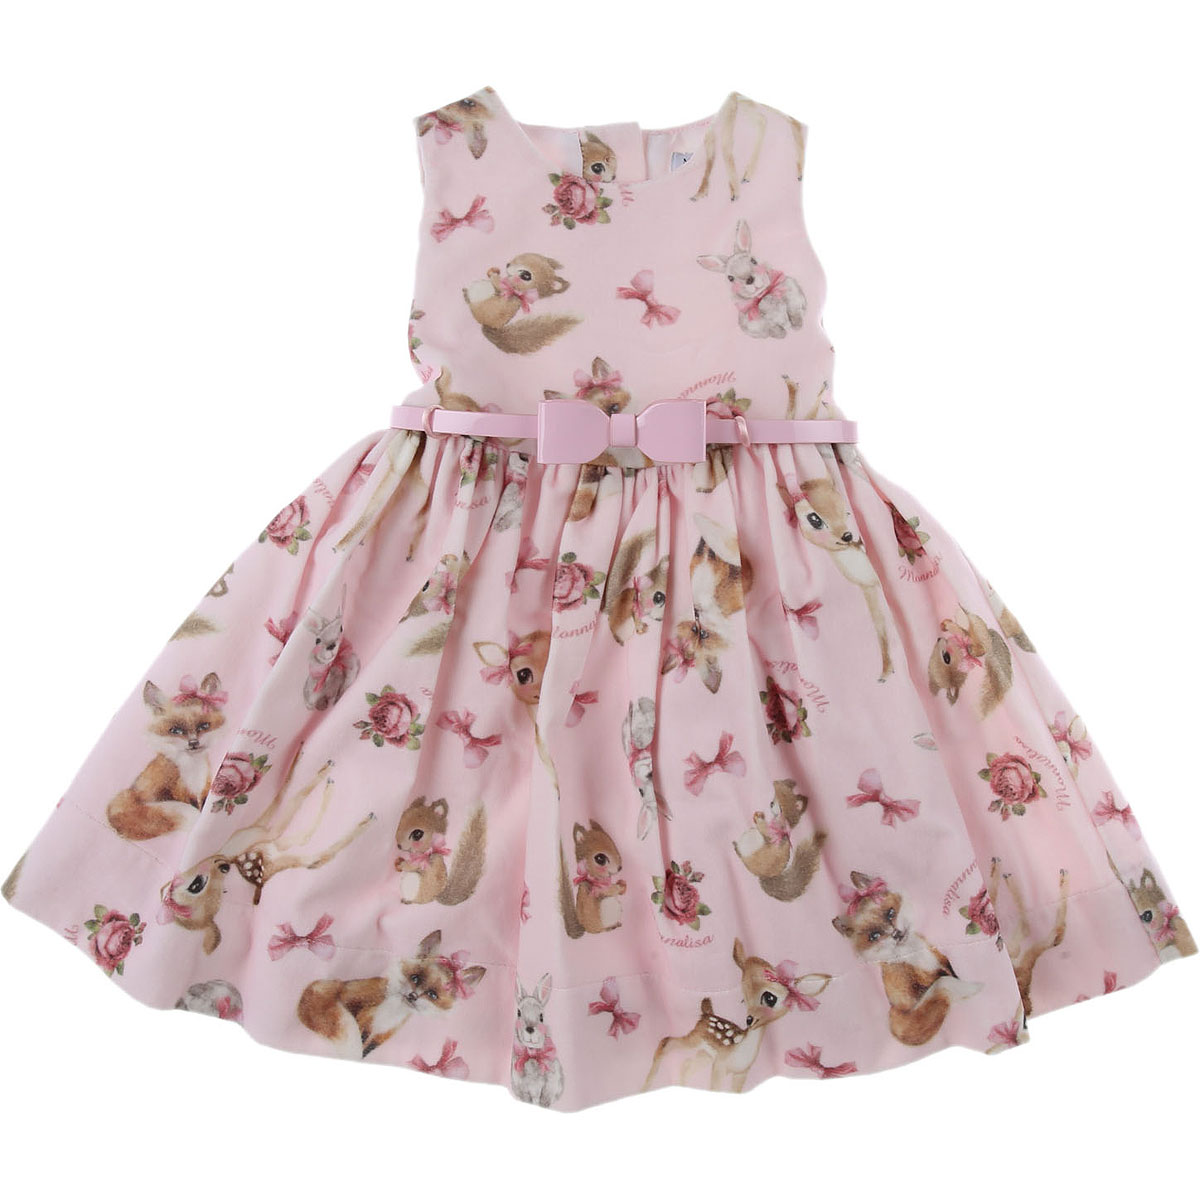 Monnalisa Baby Dress for Girls On Sale, Pink, Cotton, 2019, 12M 18M 2Y 3Y 6M 9M